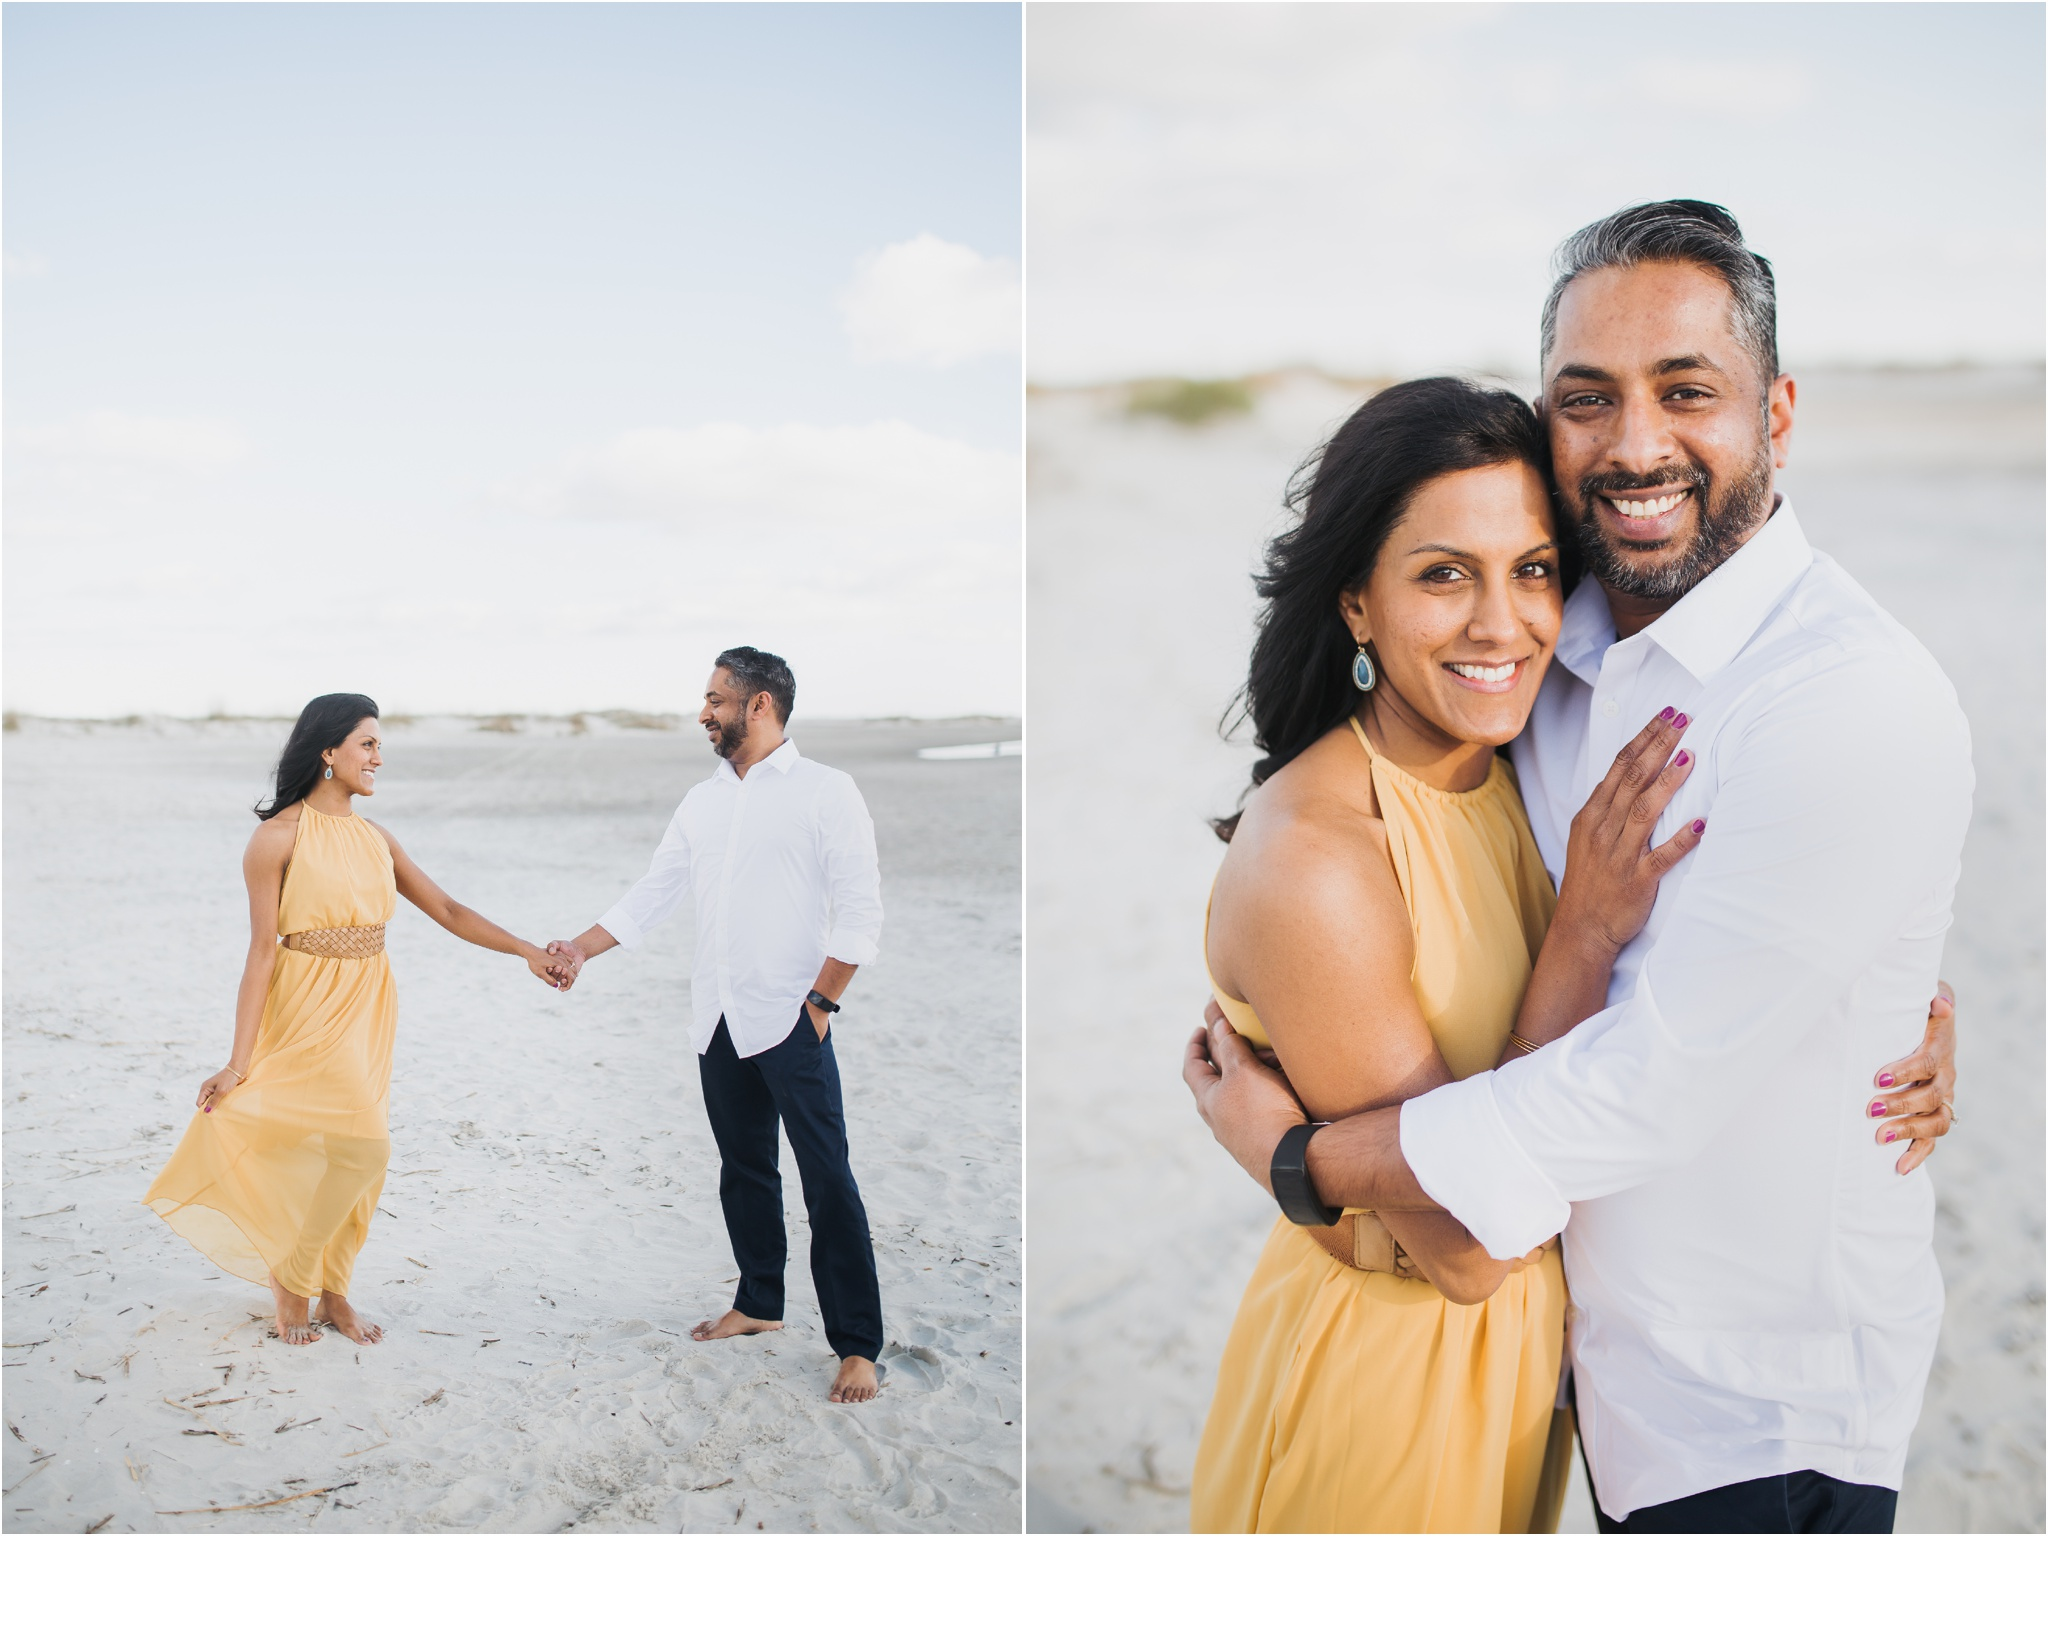 Rainey_Gregg_Photography_St._Simons_Island_Georgia_California_Wedding_Portrait_Photography_1760.jpg